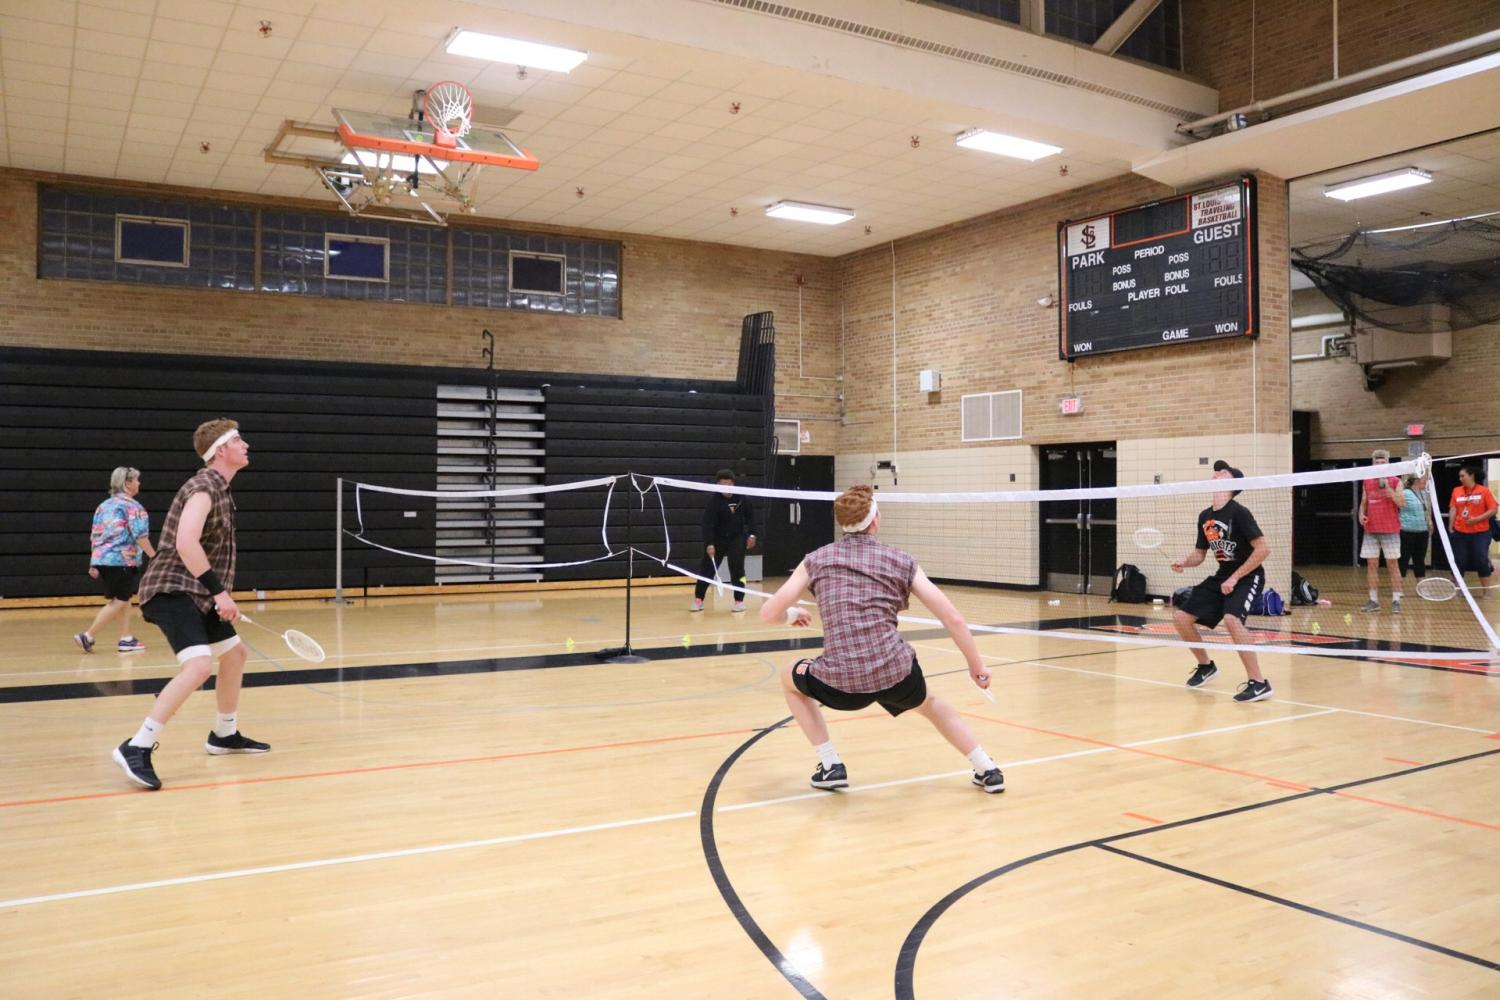 Seniors+Luke+Mobley+and+Shea+Pekarek+compete+during+a+round+of+badminton%2C+Sept%2C+12.+Tuesday+was+the+second+night+of+homecoming+events.